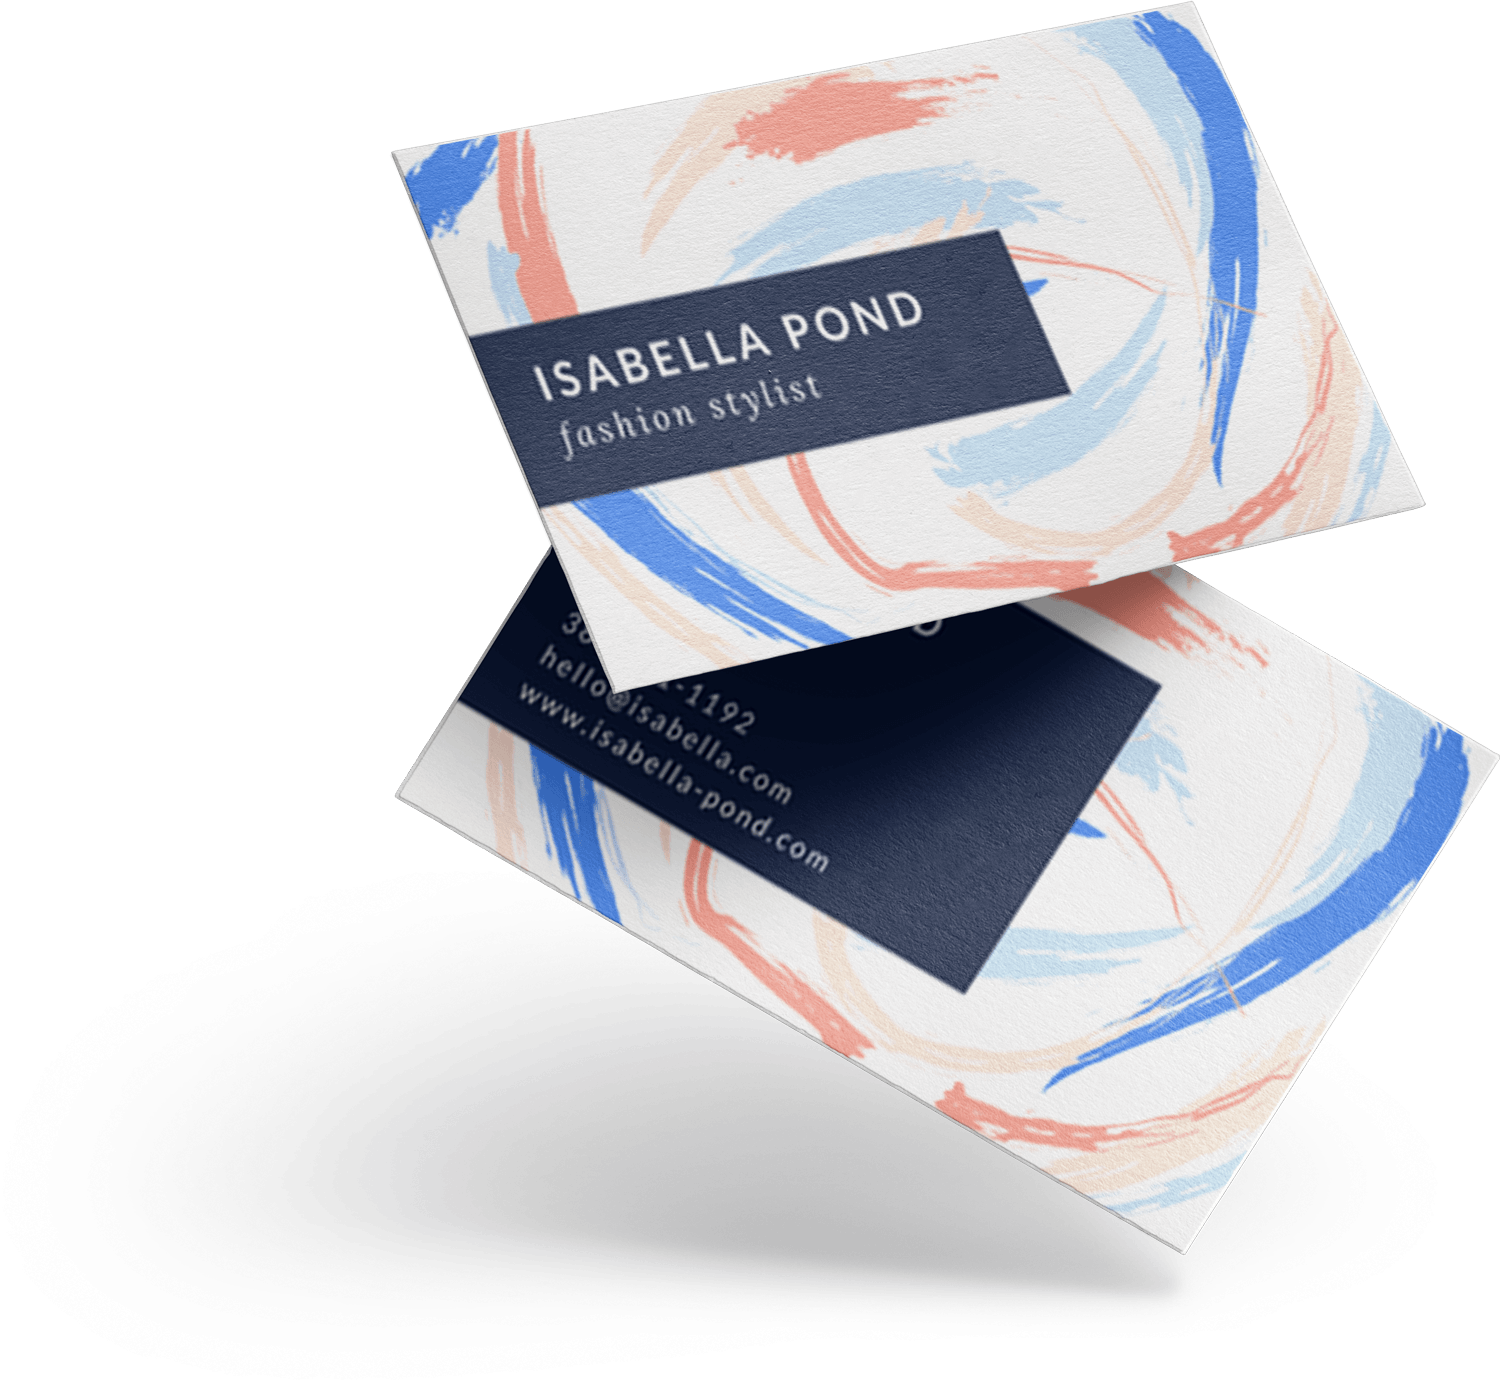 Design and Print Business Cards on Canva